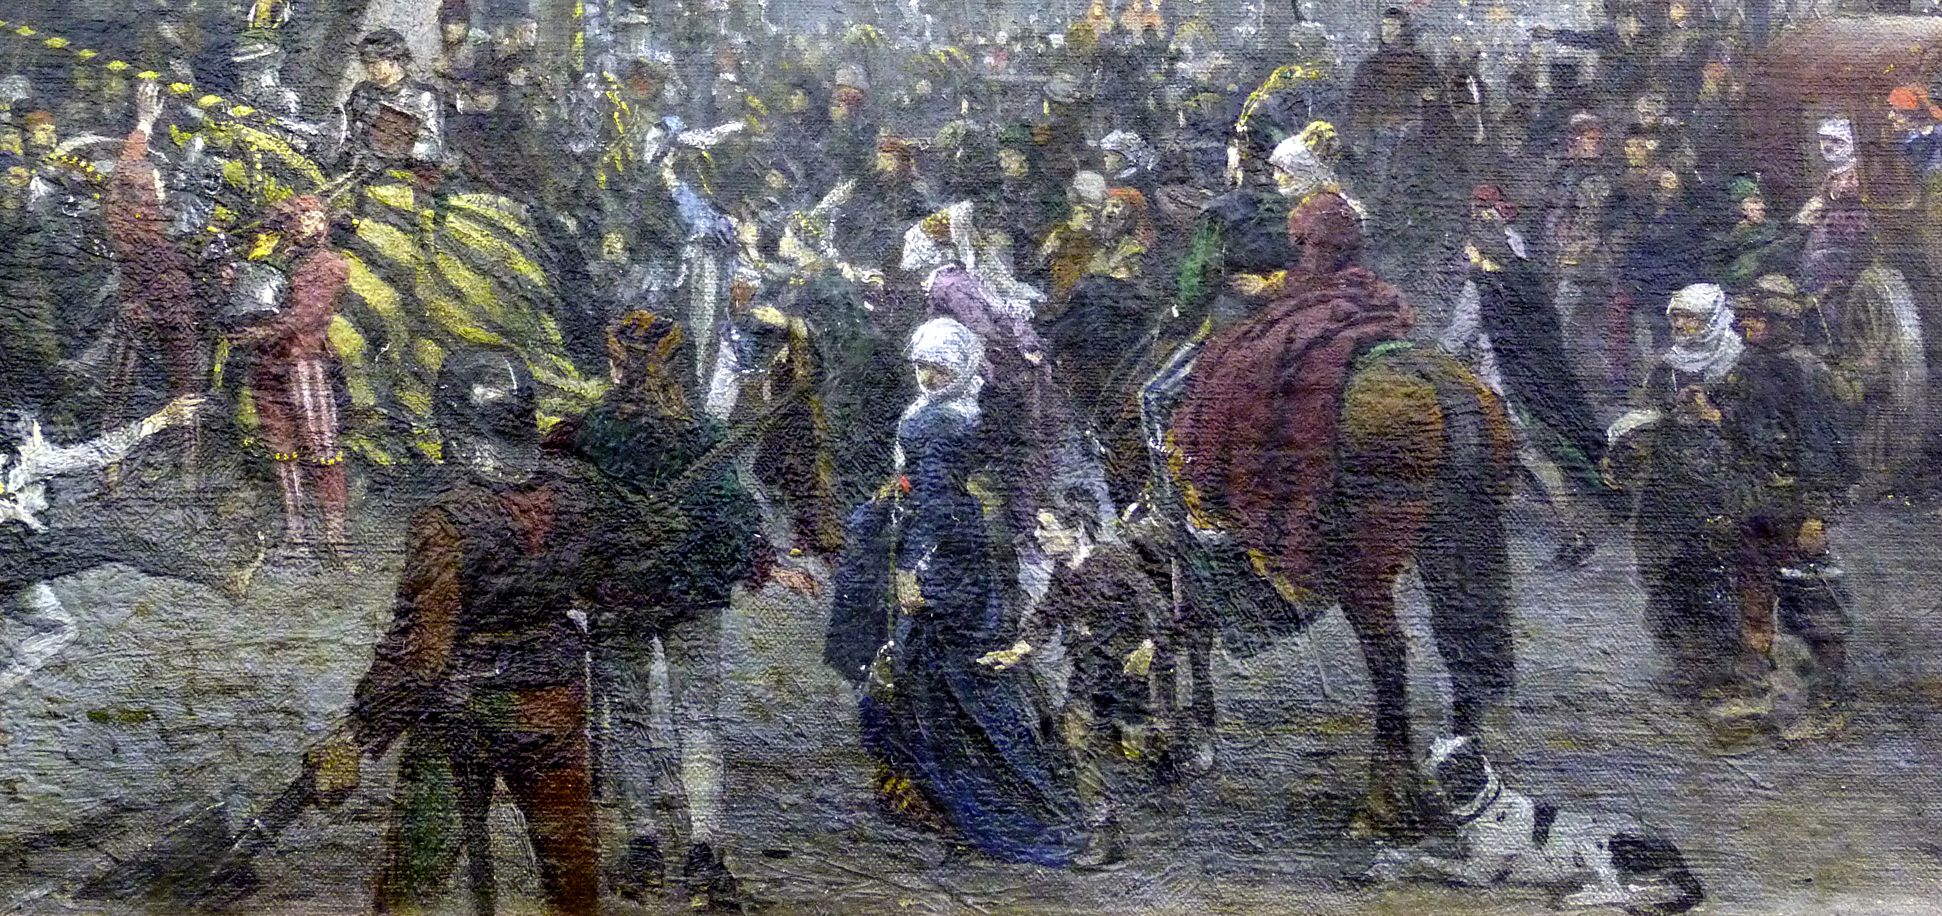 The Market Place in Nuremberg at the time of the tournament of 1496 Tournament knights, onlookers